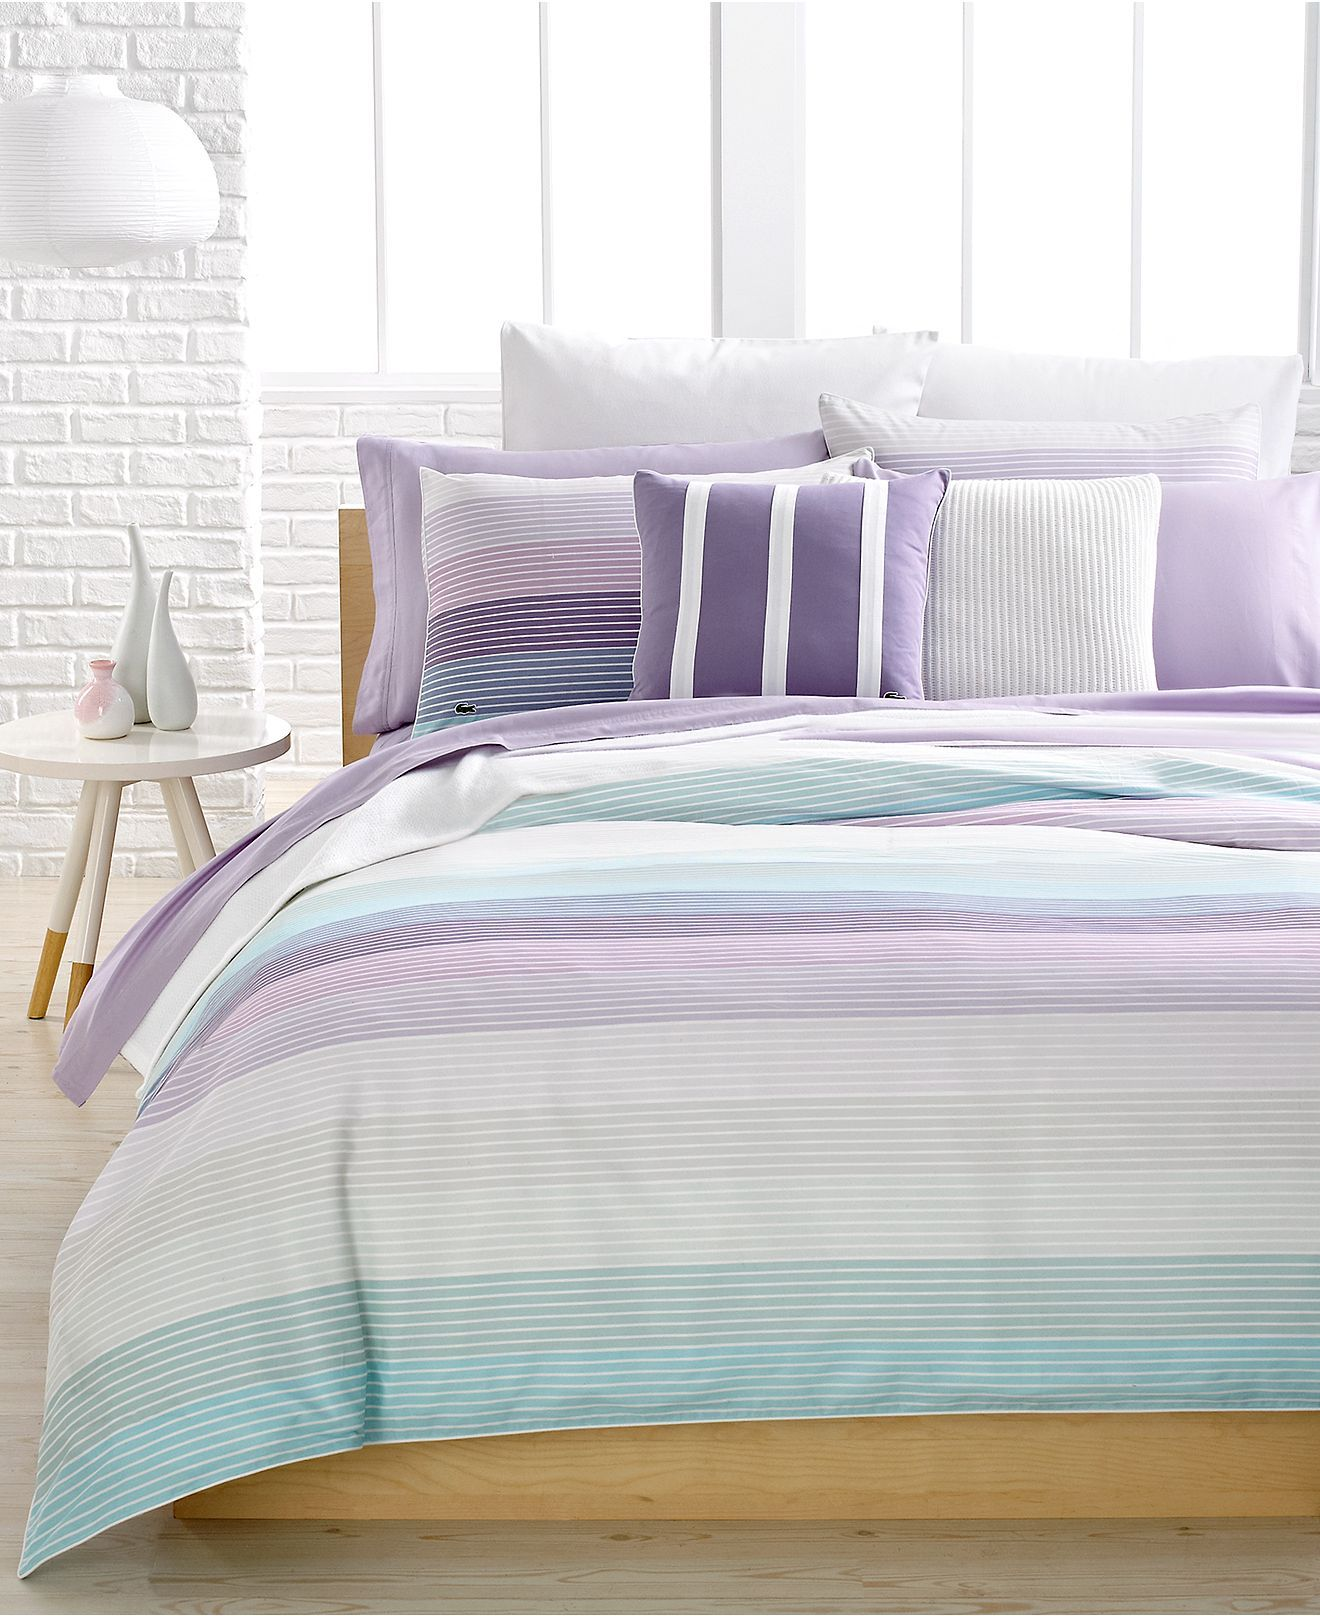 macys cover down duvet sets of lacoste colorful forter bedding pillows and daunay